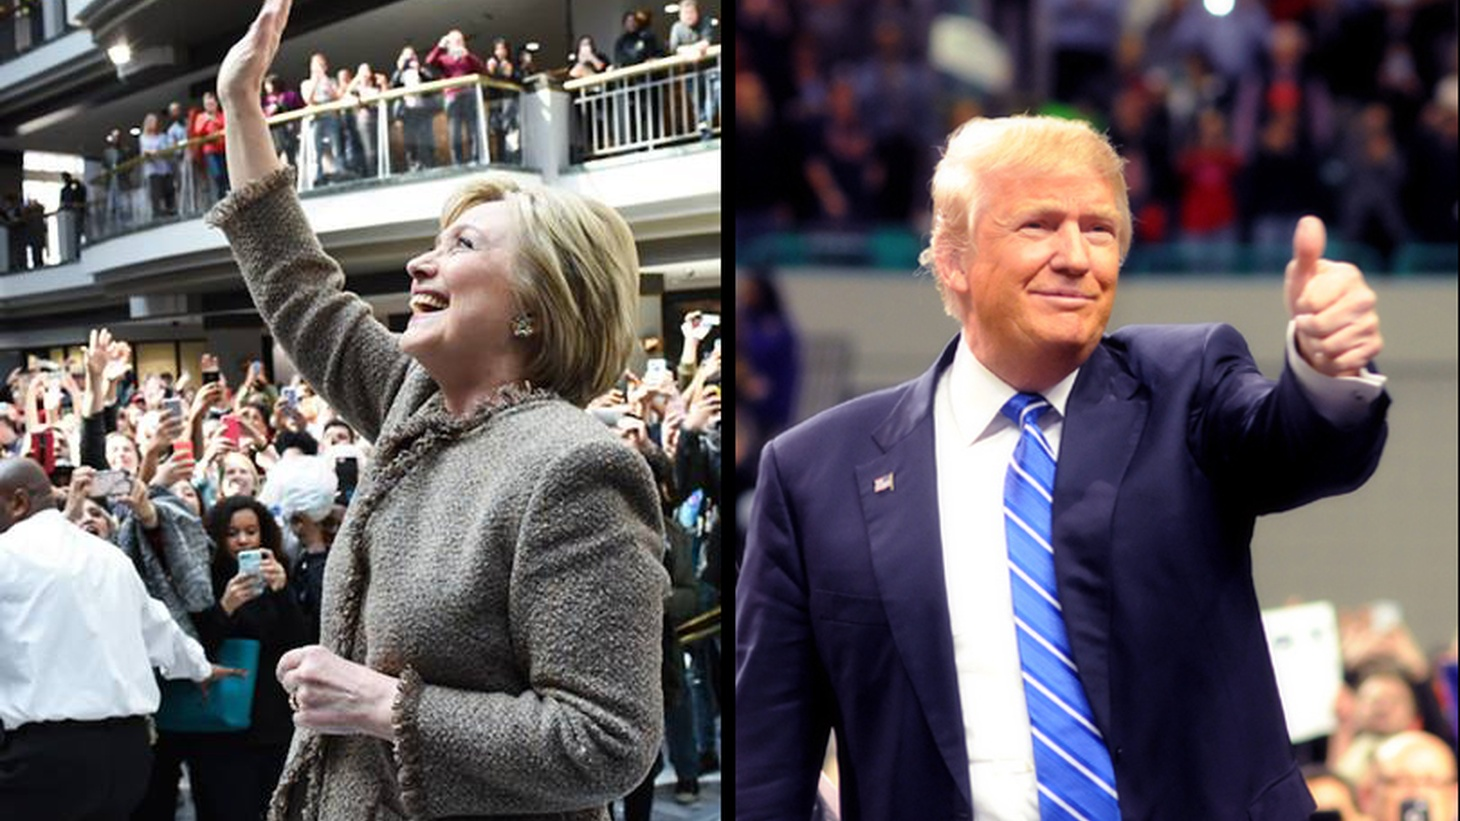 Hillary Clinton and Donald Trump were the big winners in yesterday's voting, but there's a long way to go — and both parties are heading for uncharted territory.We update the latest political traffic on the road to the White House.